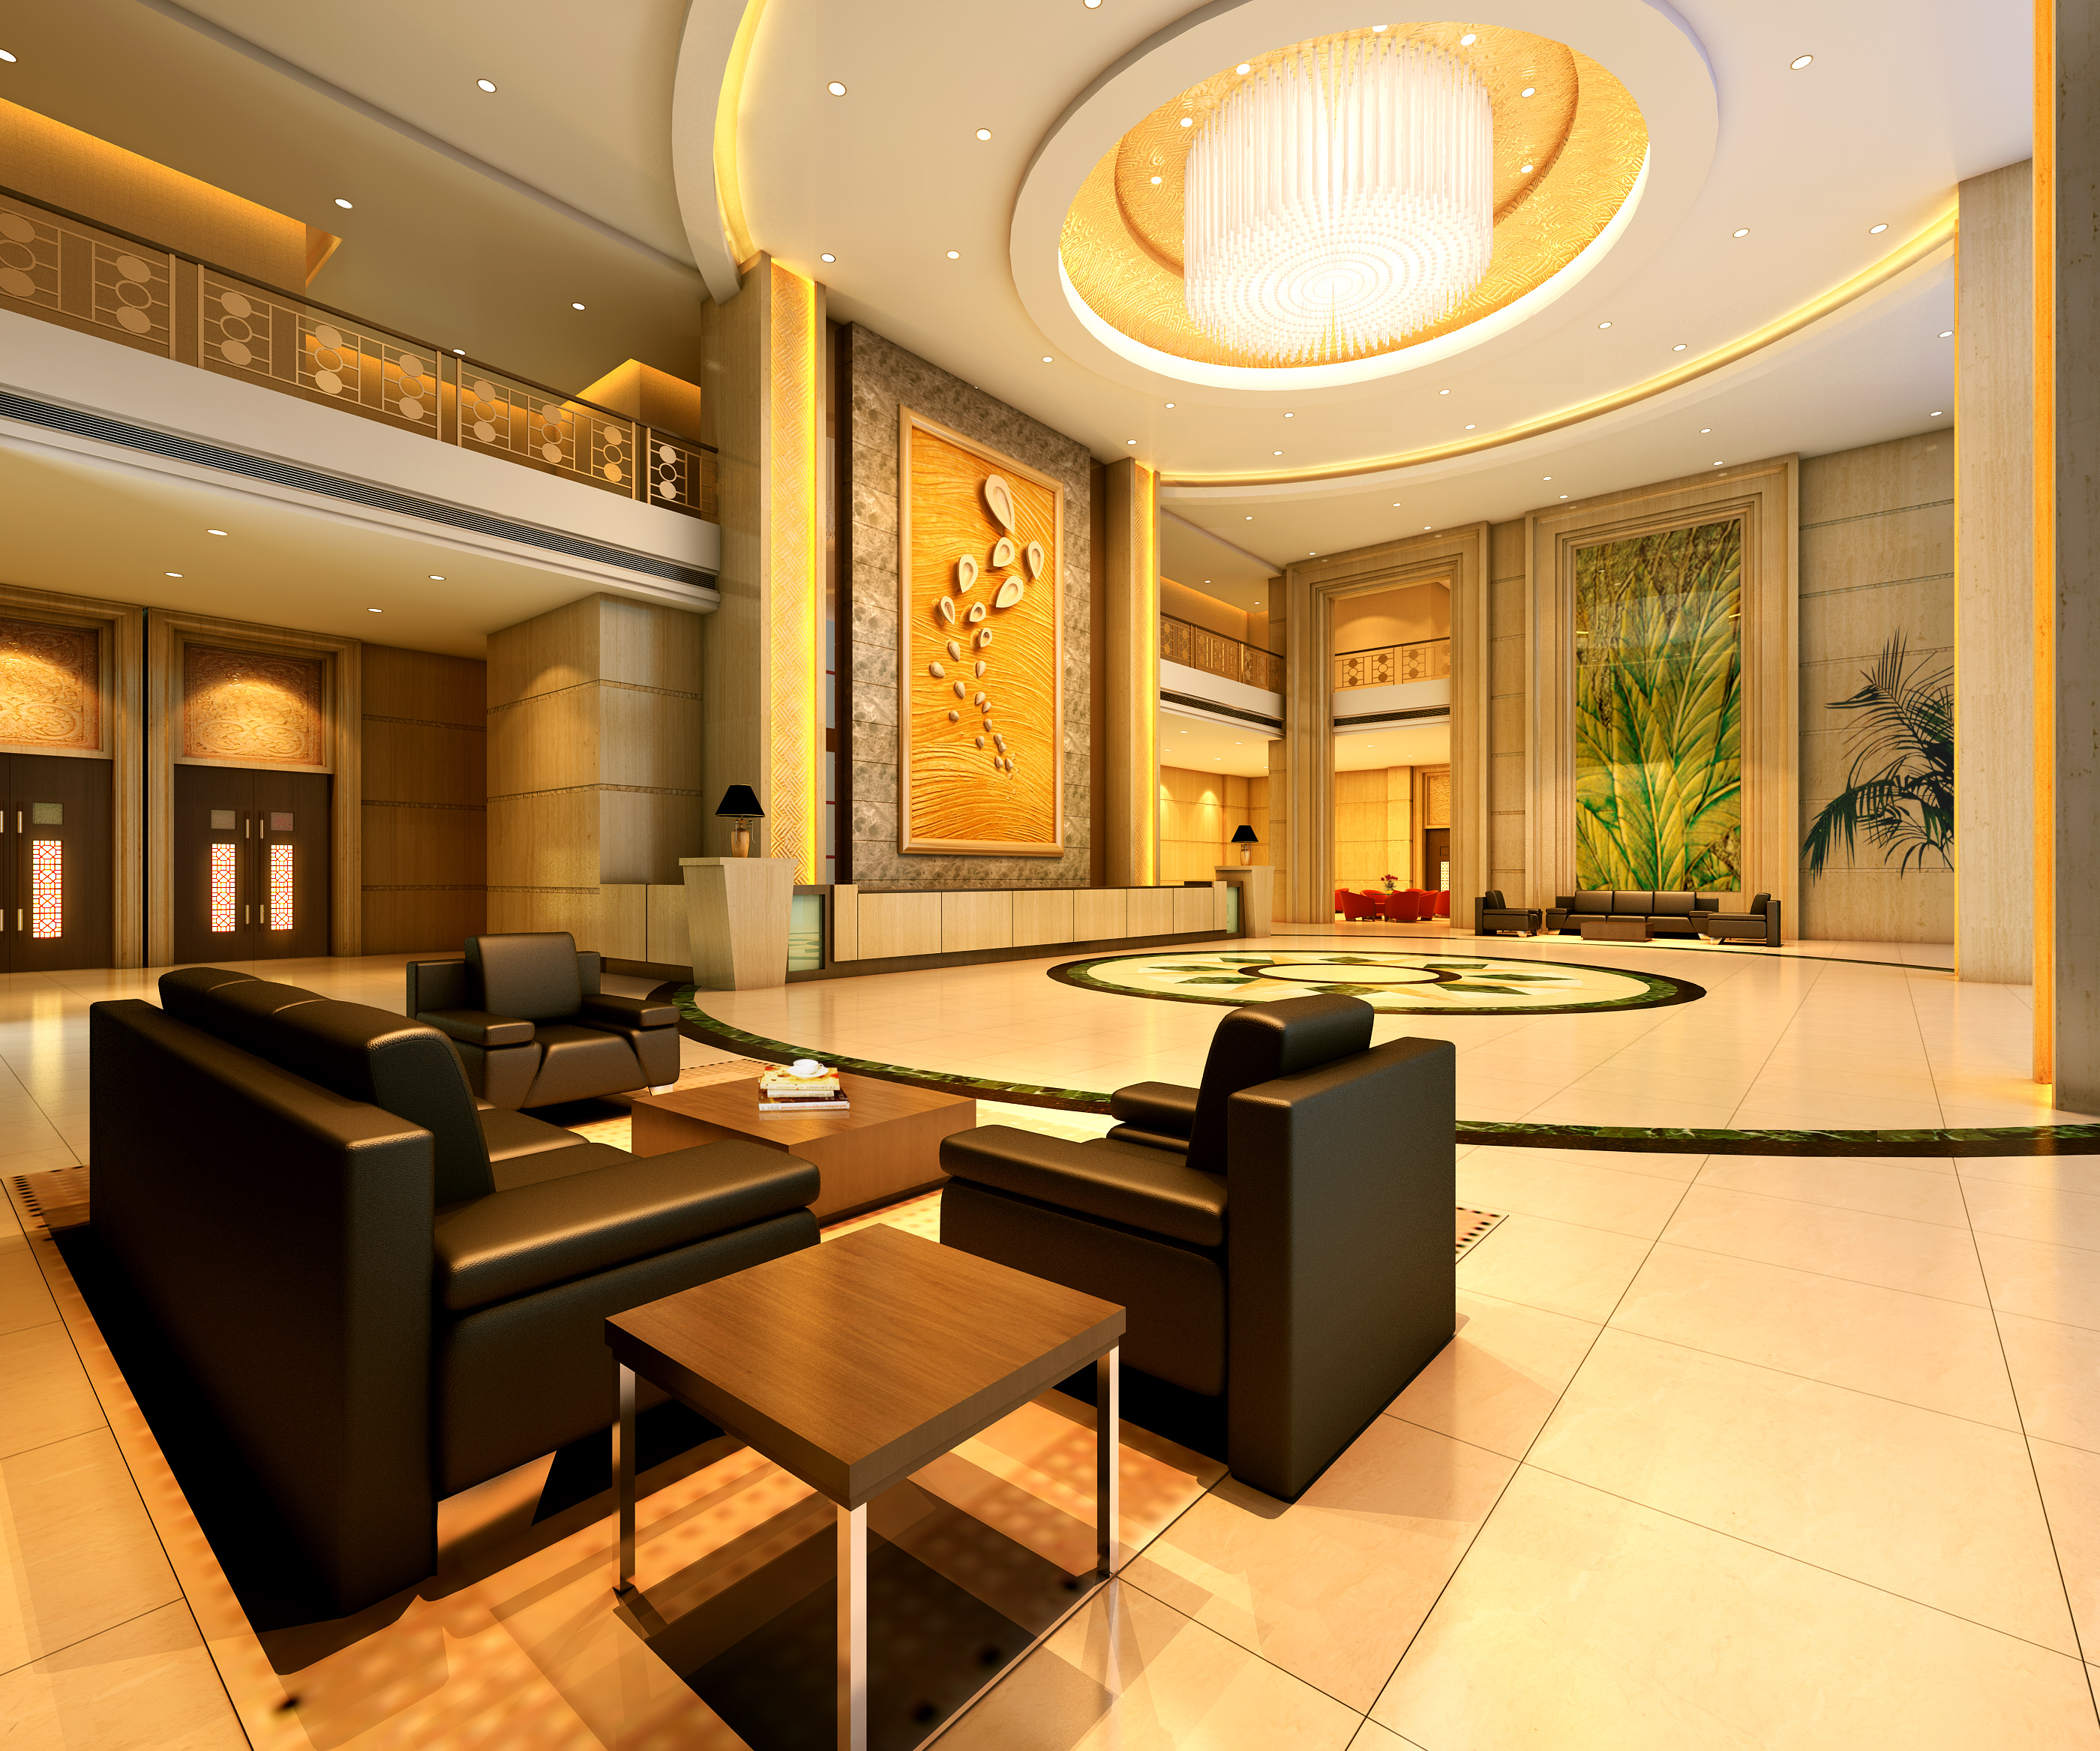 Foyer with High-end Wall Decor 3D model   CGTrader